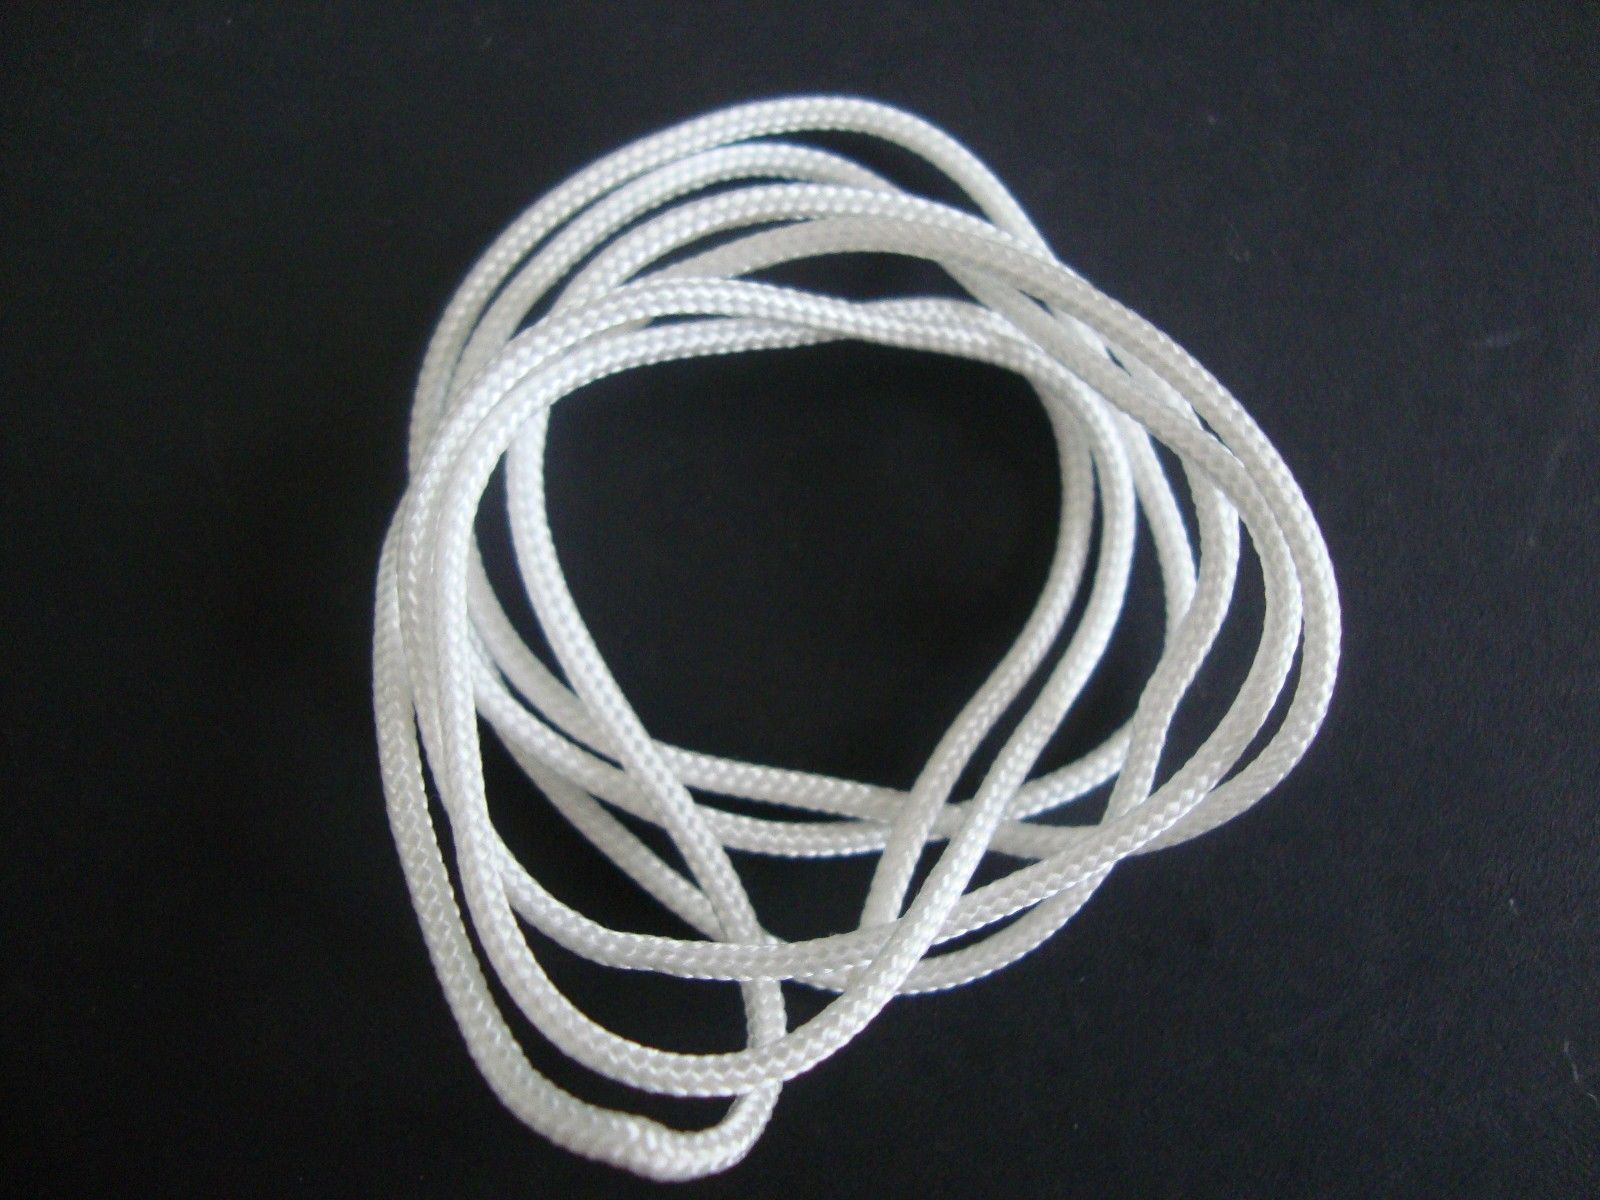 60 FEET : 1.8mm WHITE LIFT CORD for Blinds, Roman Shades and More